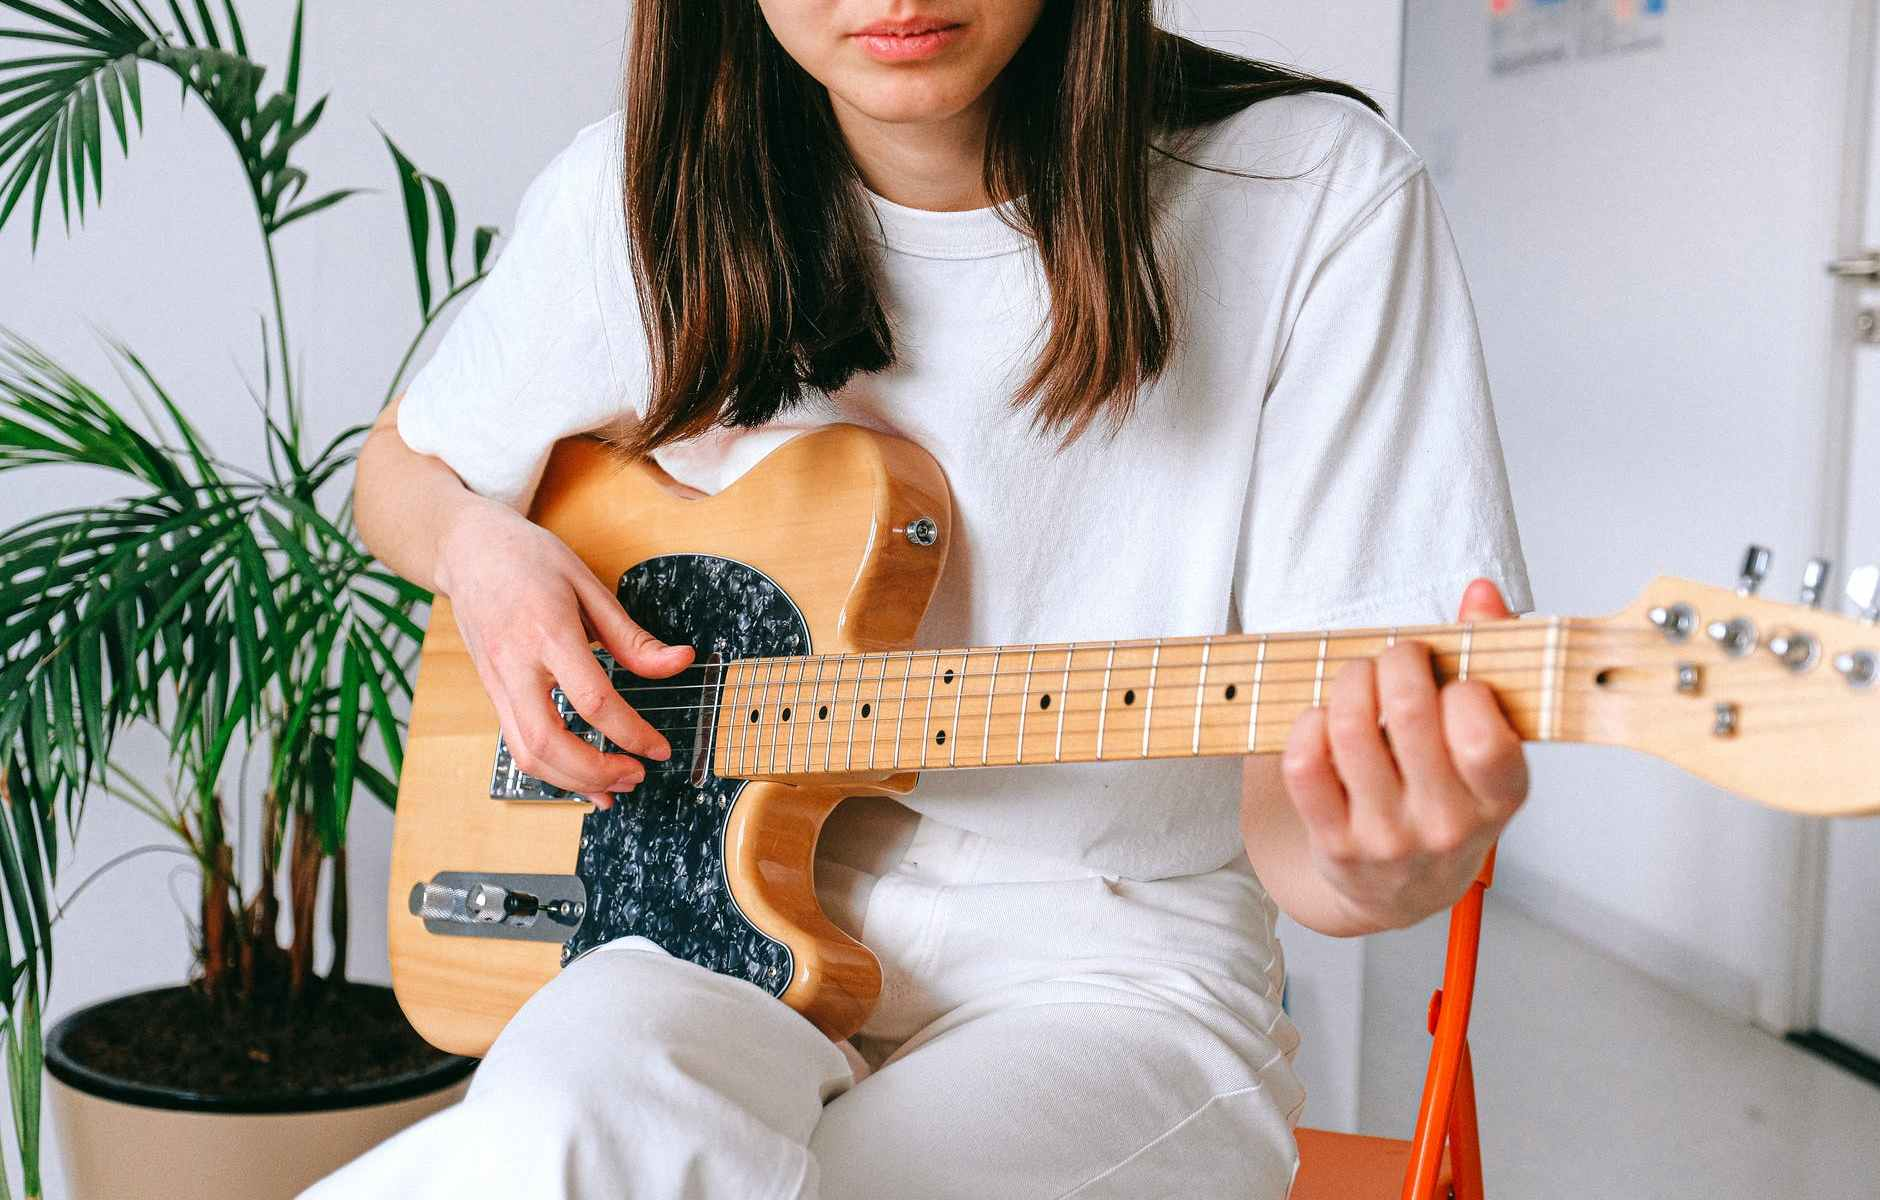 woman in white shirt playing brown electric guitar